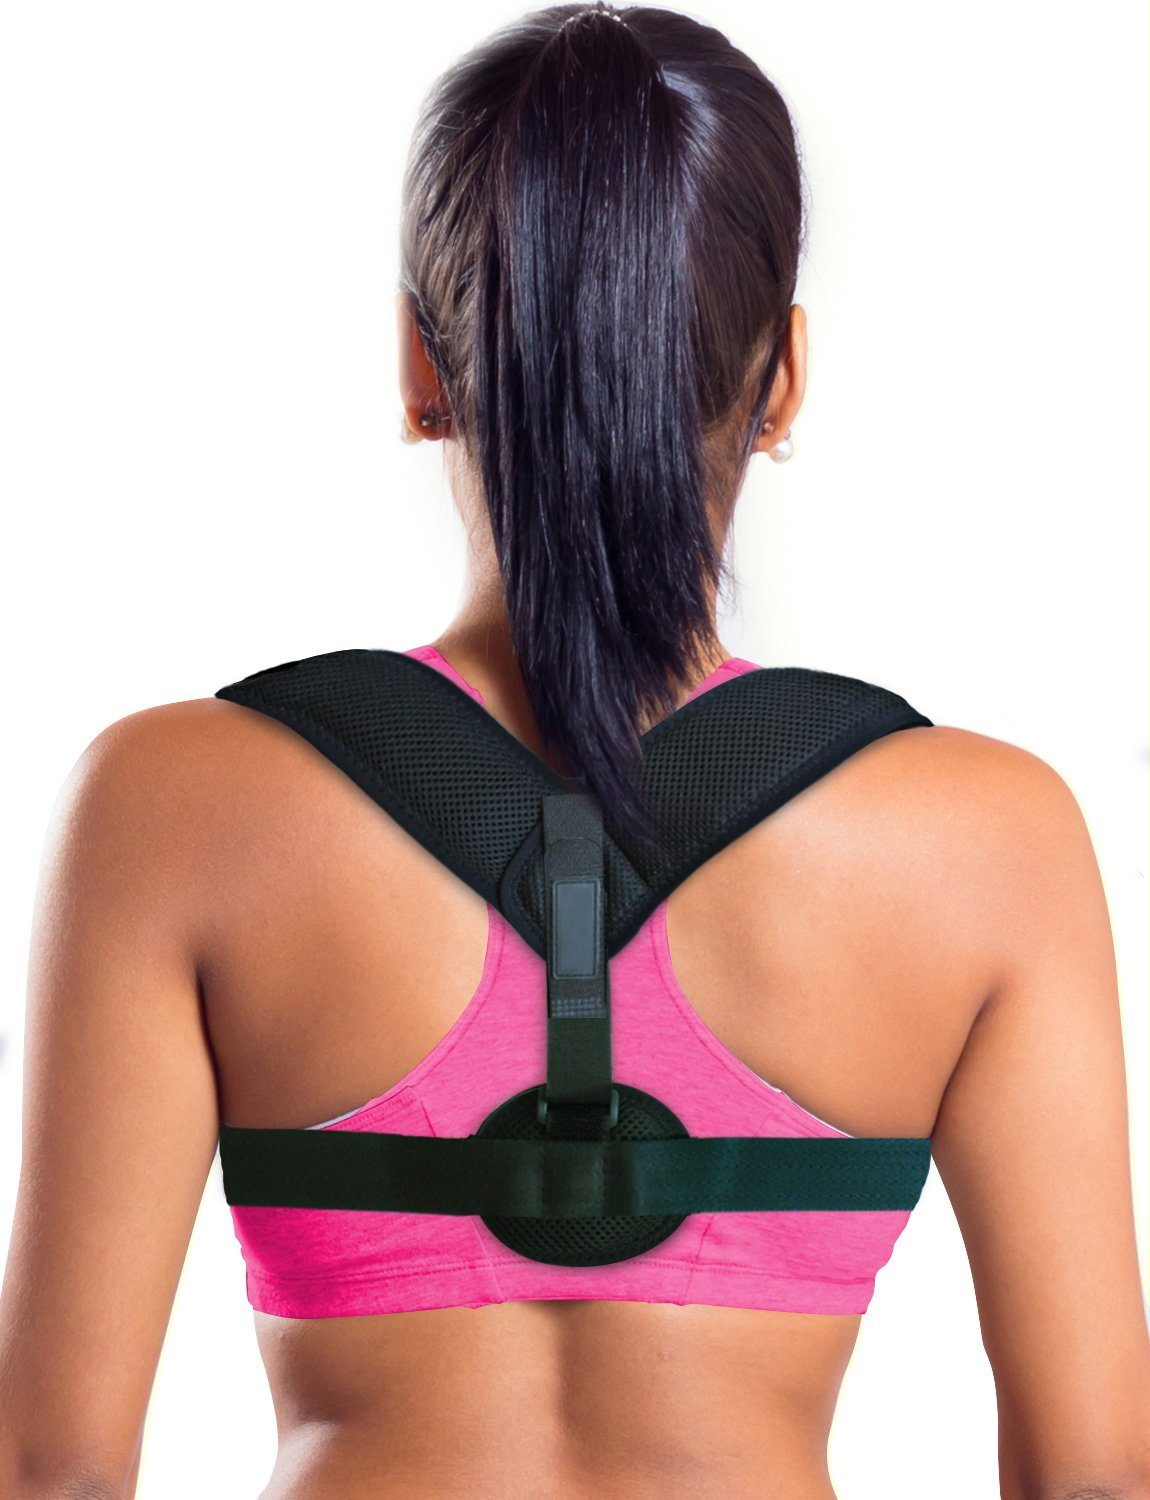 Bangbreak Figure 8 Posture Corrector Back and Shoulder Support Brace for Women & Men, Helps to Improve Posture, Prevent Slouching and Relieve Pain